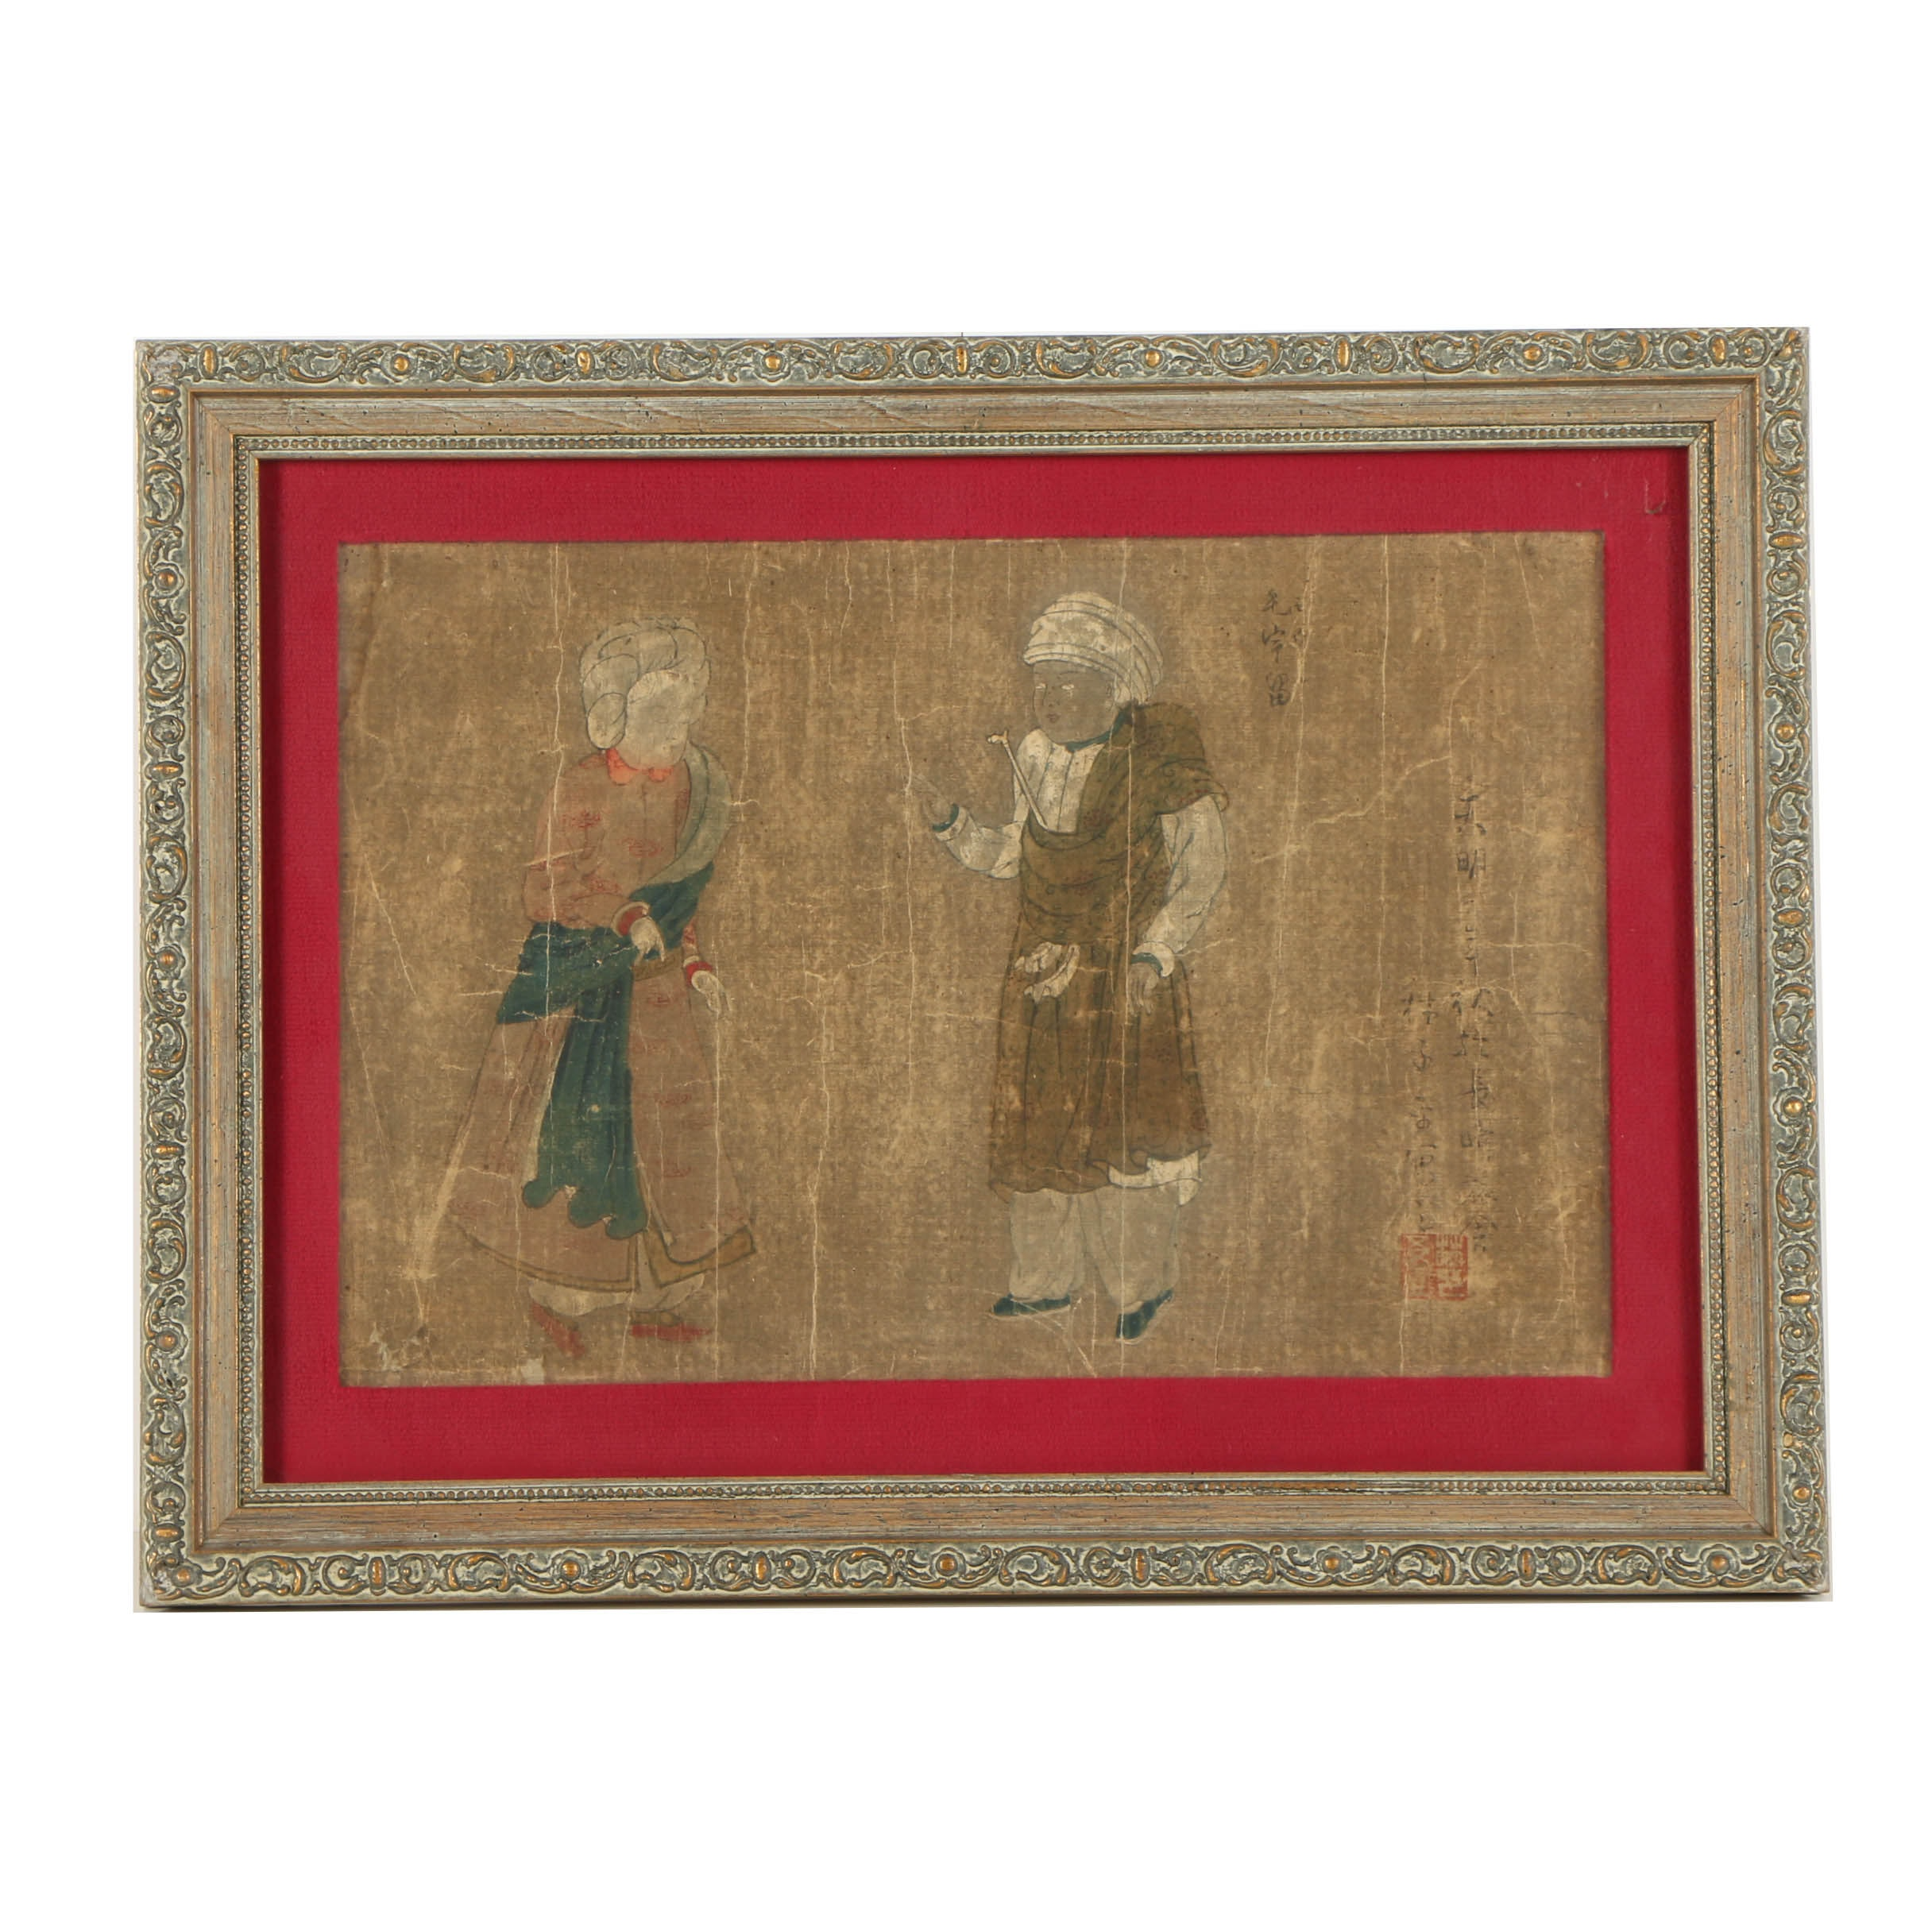 Antique Japanese Woodblock Print on Paper of Two Figures